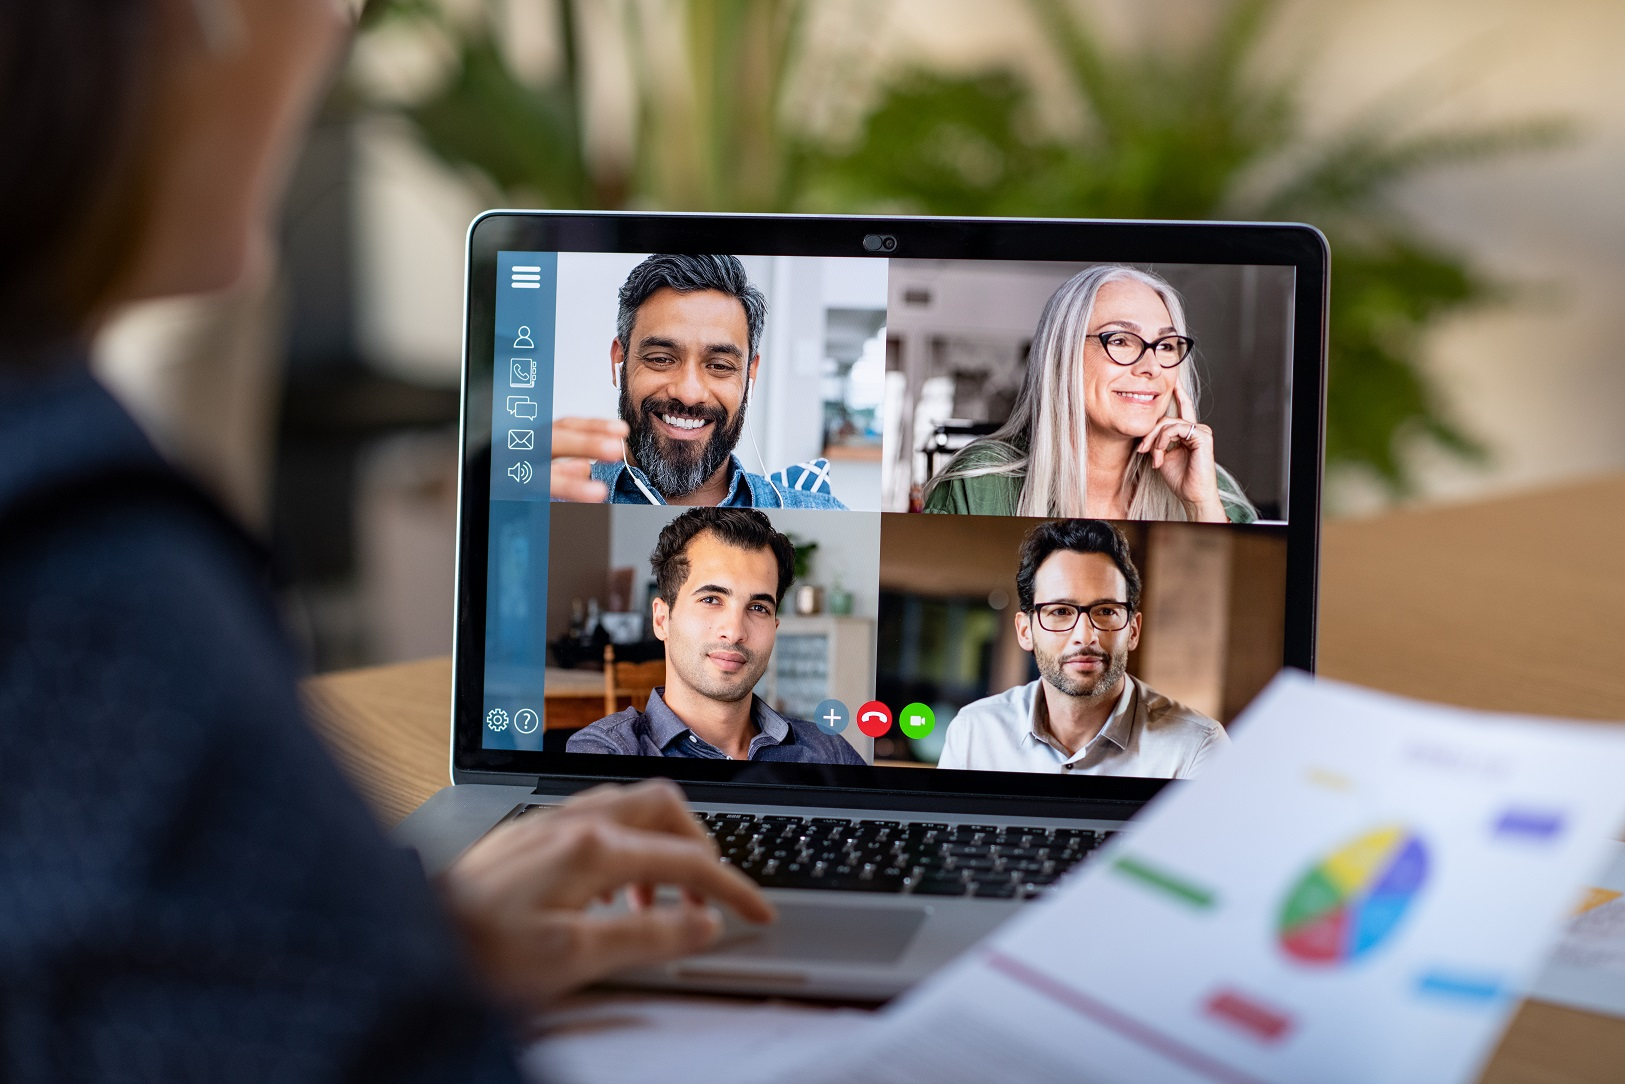 Remote Management : How to handle poor performing employees